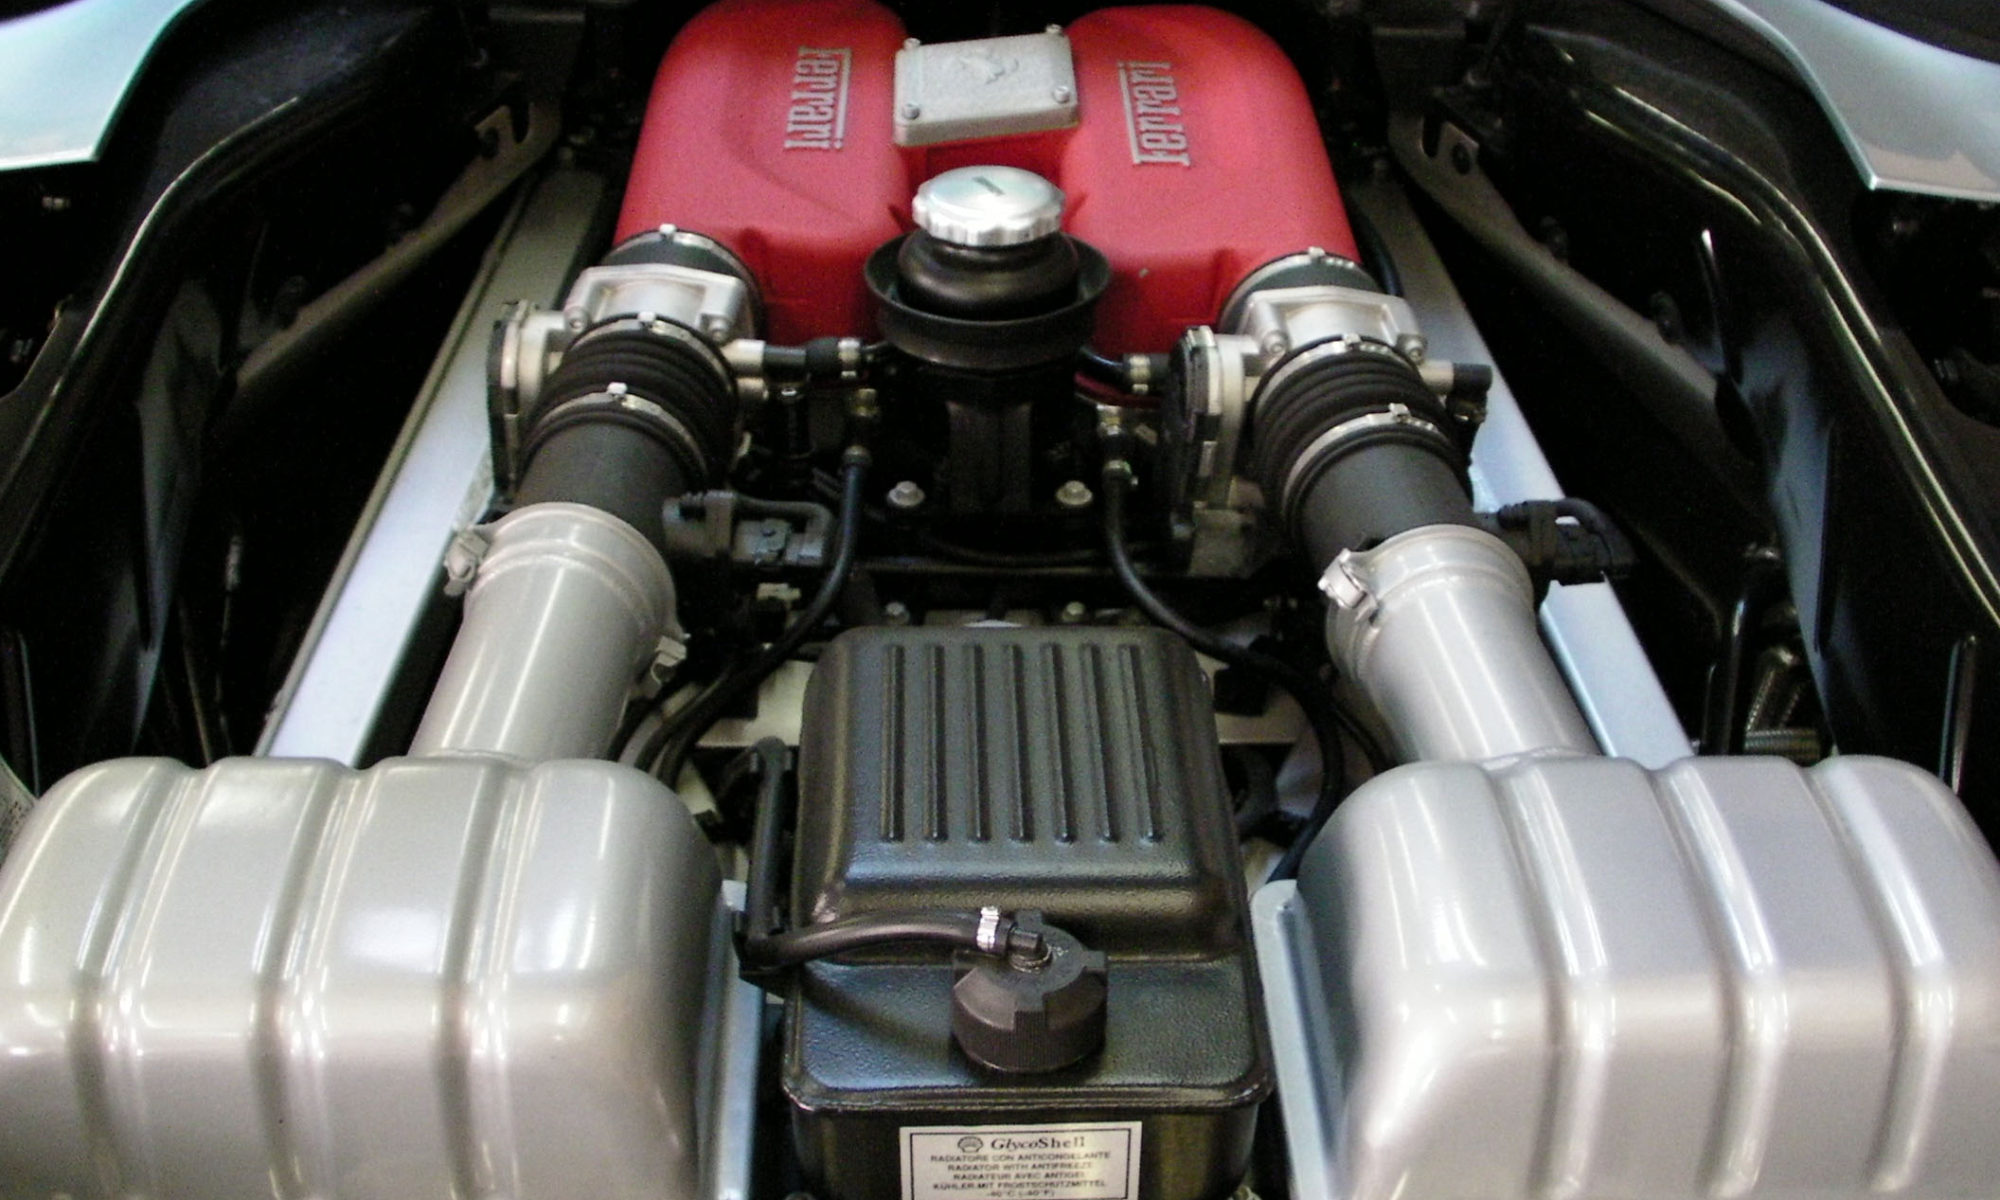 Ferrari F360. Services: Color coated air intake with K&N filter upgrade.